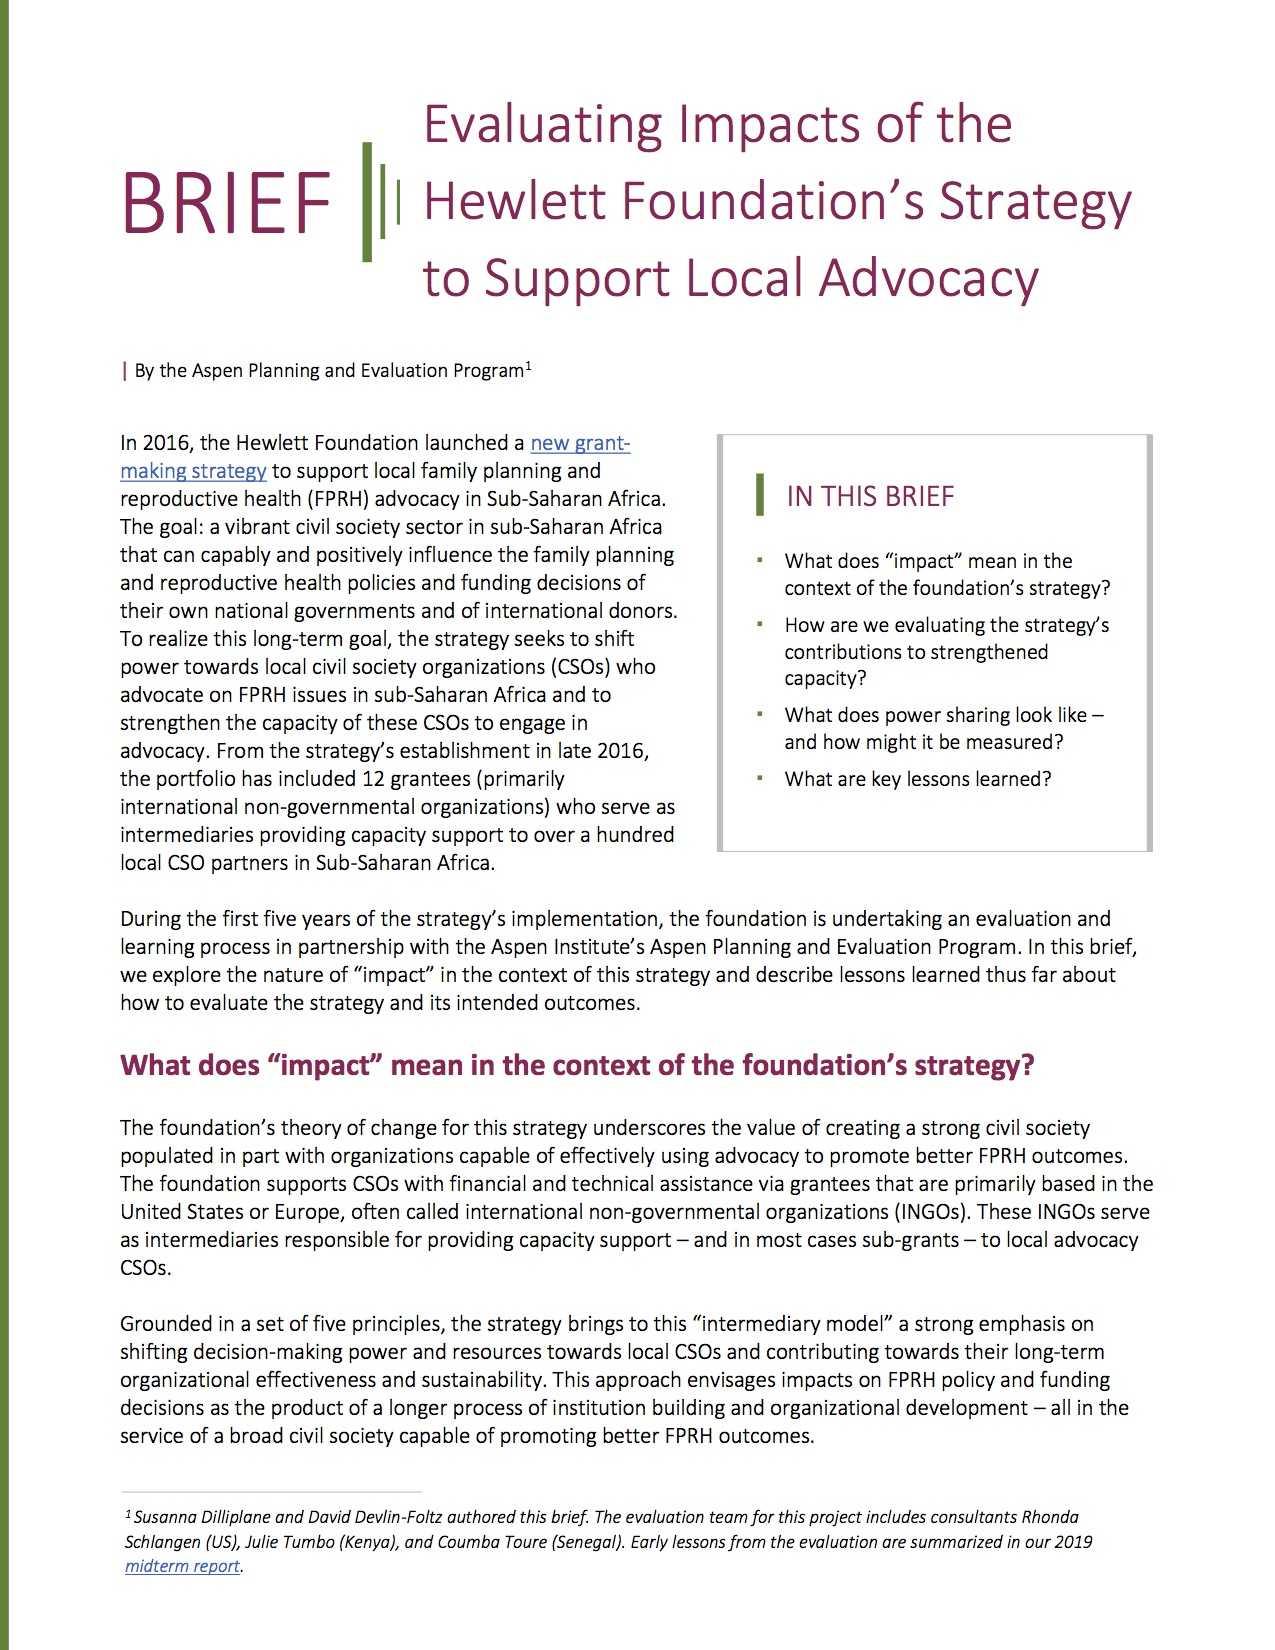 Brief: Evaluating Capacity and Power Sharing